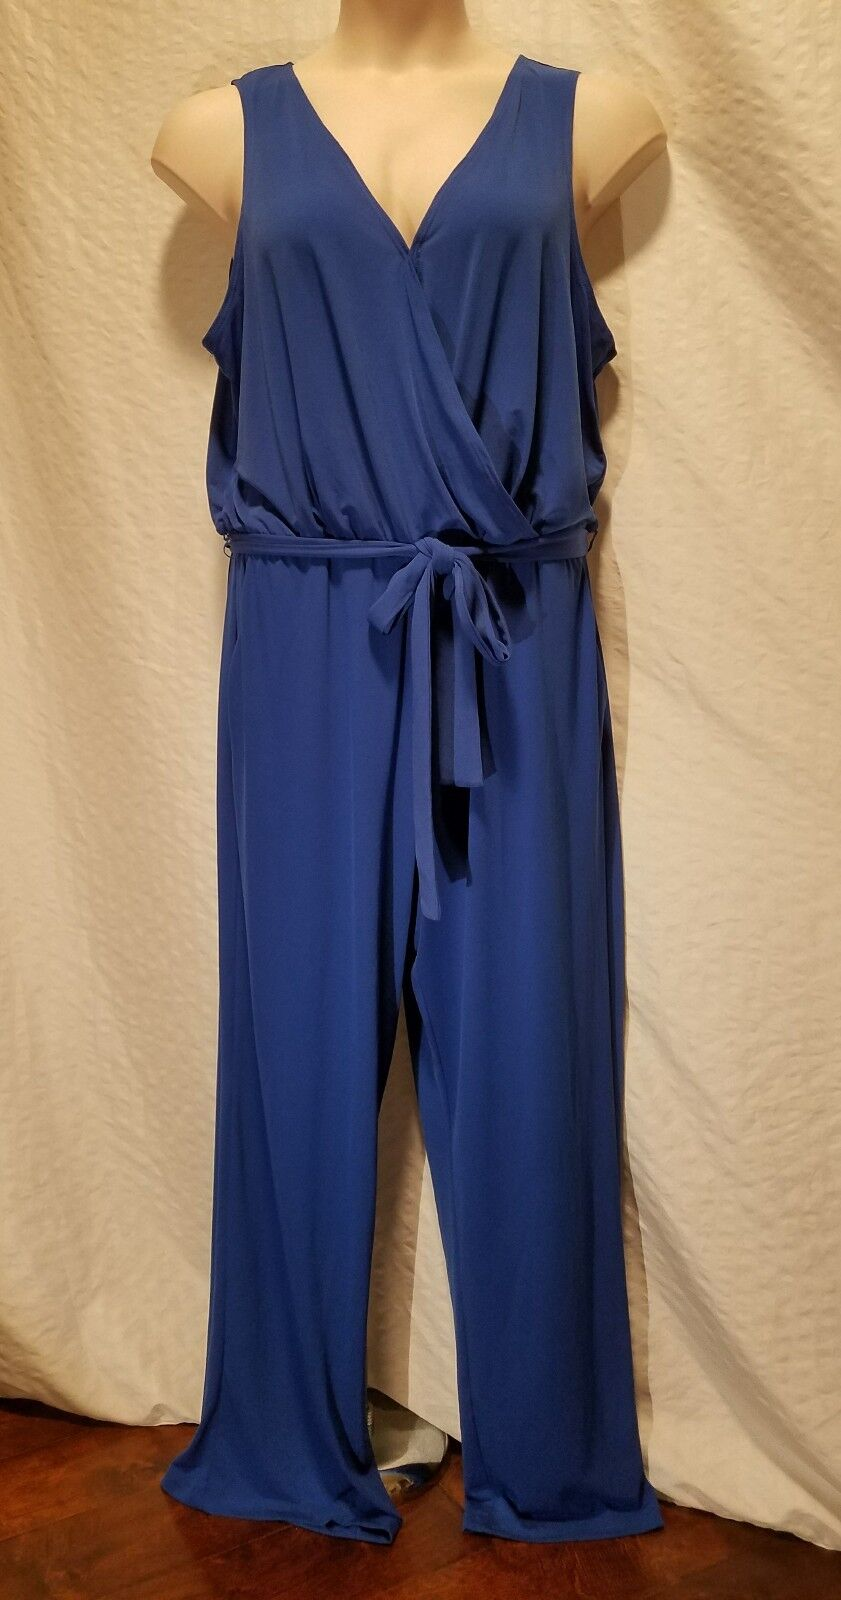 New NY Collection Women's Plus Size 2XP Jumpsuit Romper bluee Wide Leg Sleeveless